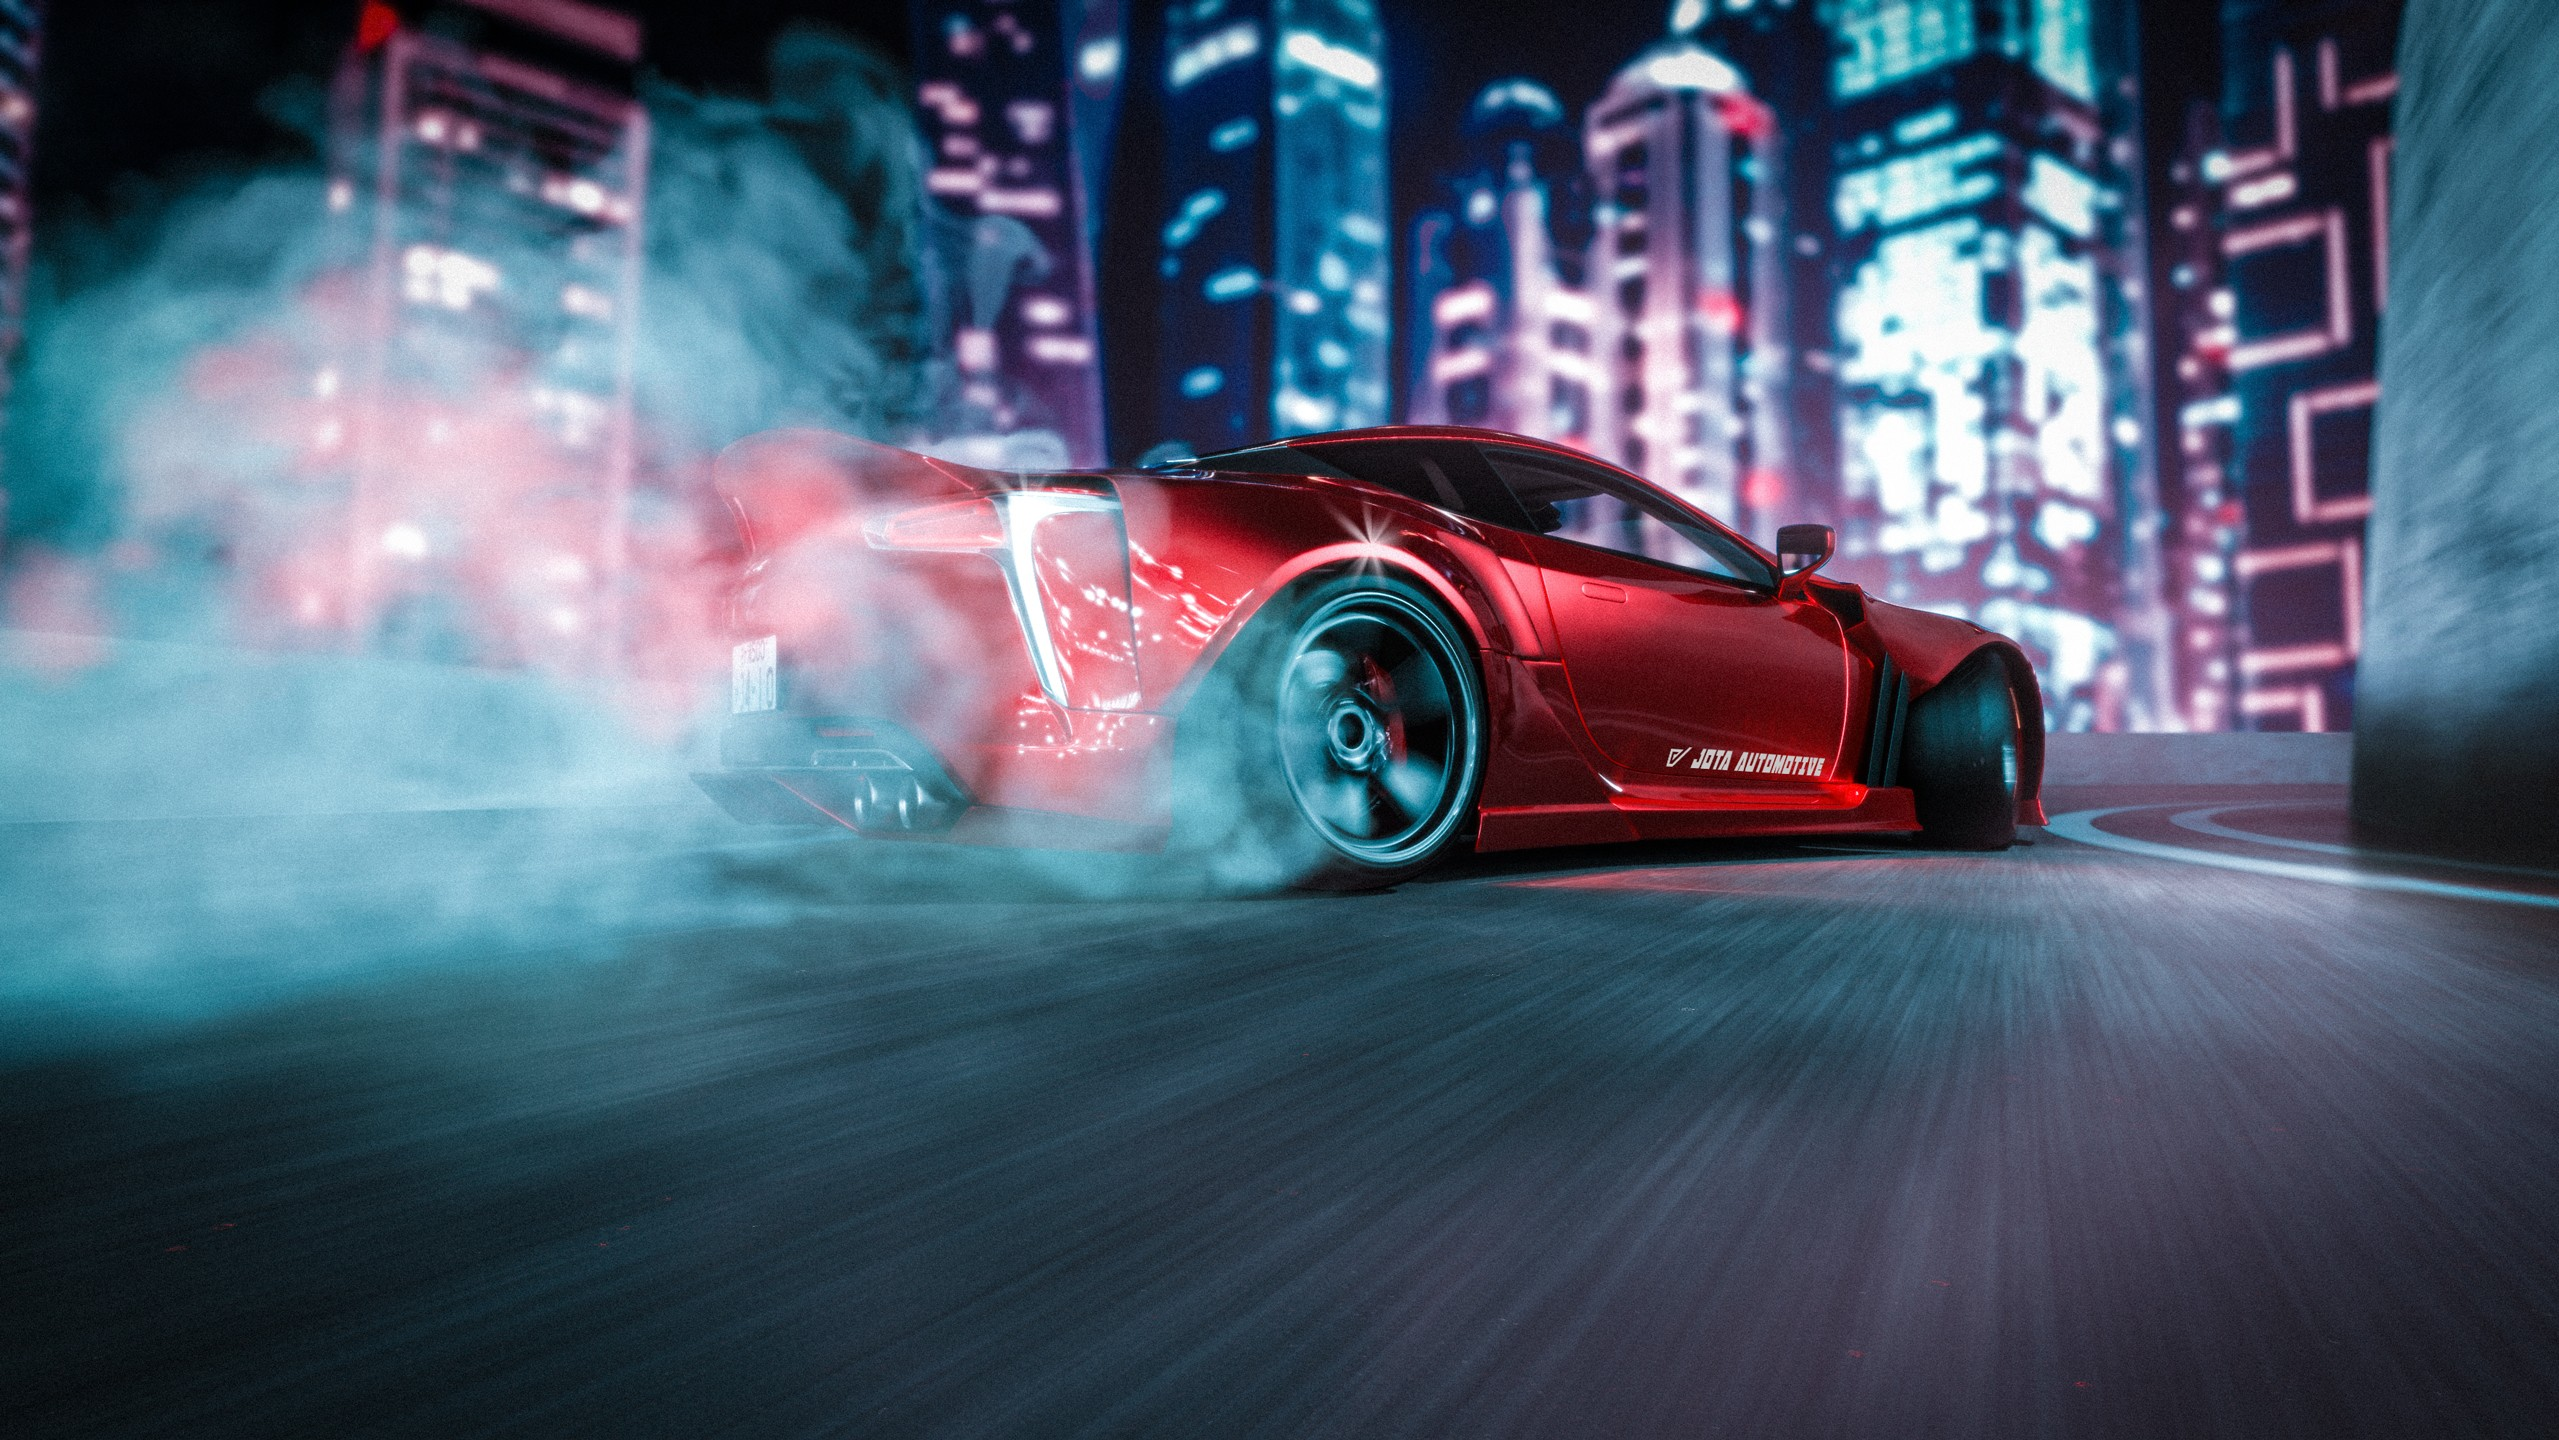 Lexus LC 500 Drifting, HD Cars, 4k Wallpapers, Images ...